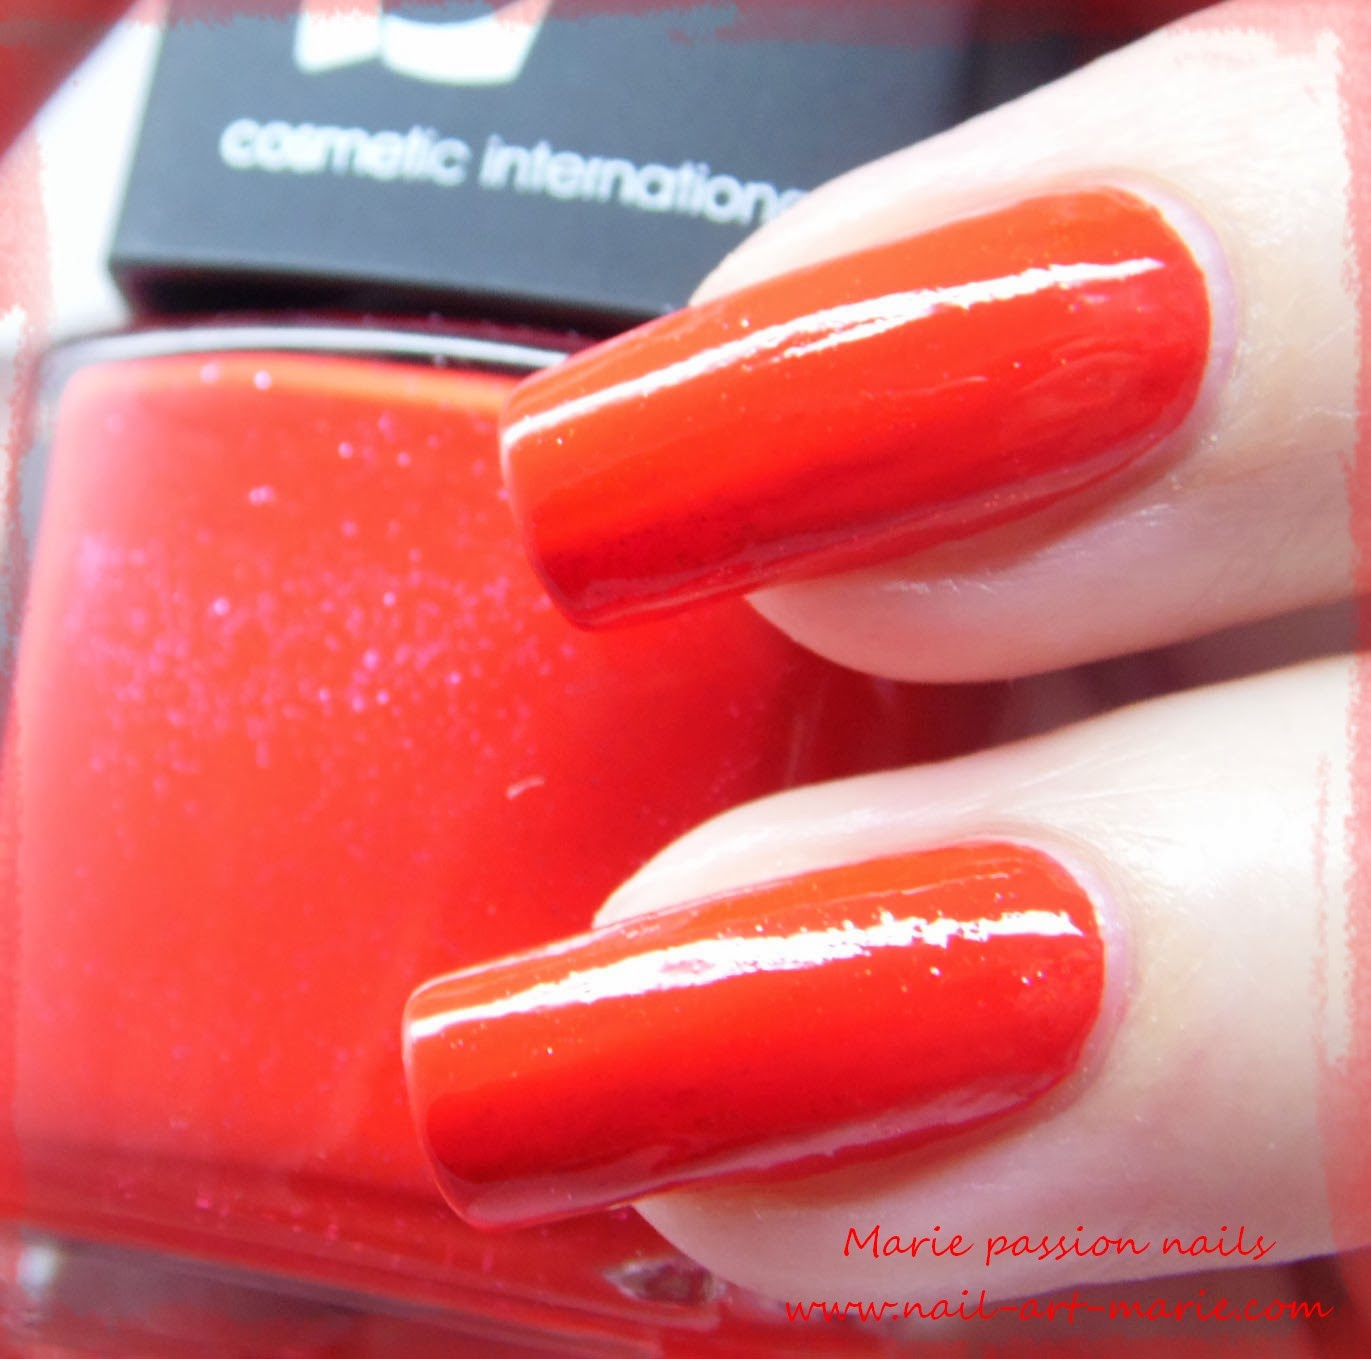 LM Cosmetic Commedia4